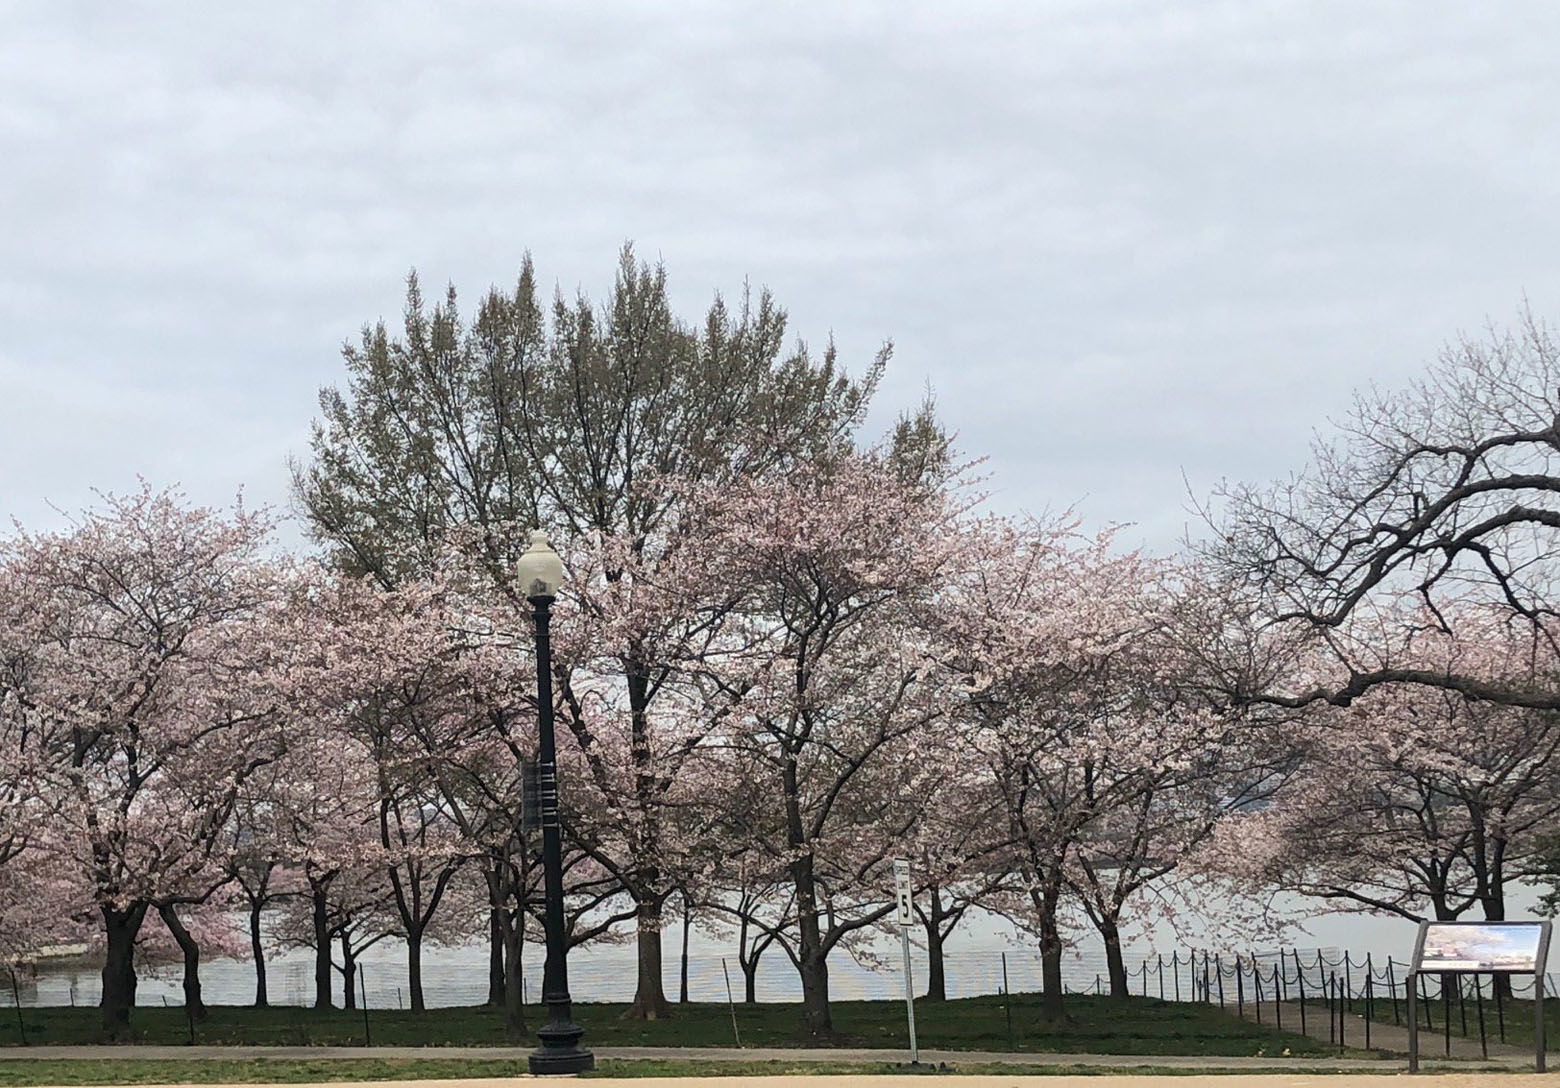 About 20 percent of the Yoshino cherry trees that line the Tidal Basin are now at full blossom, meaning the official bloom period has begun. Peak bloom -- when 70 percent of trees are at full bloom -- is projected for April 5-8. (Courtesy National Park Service)